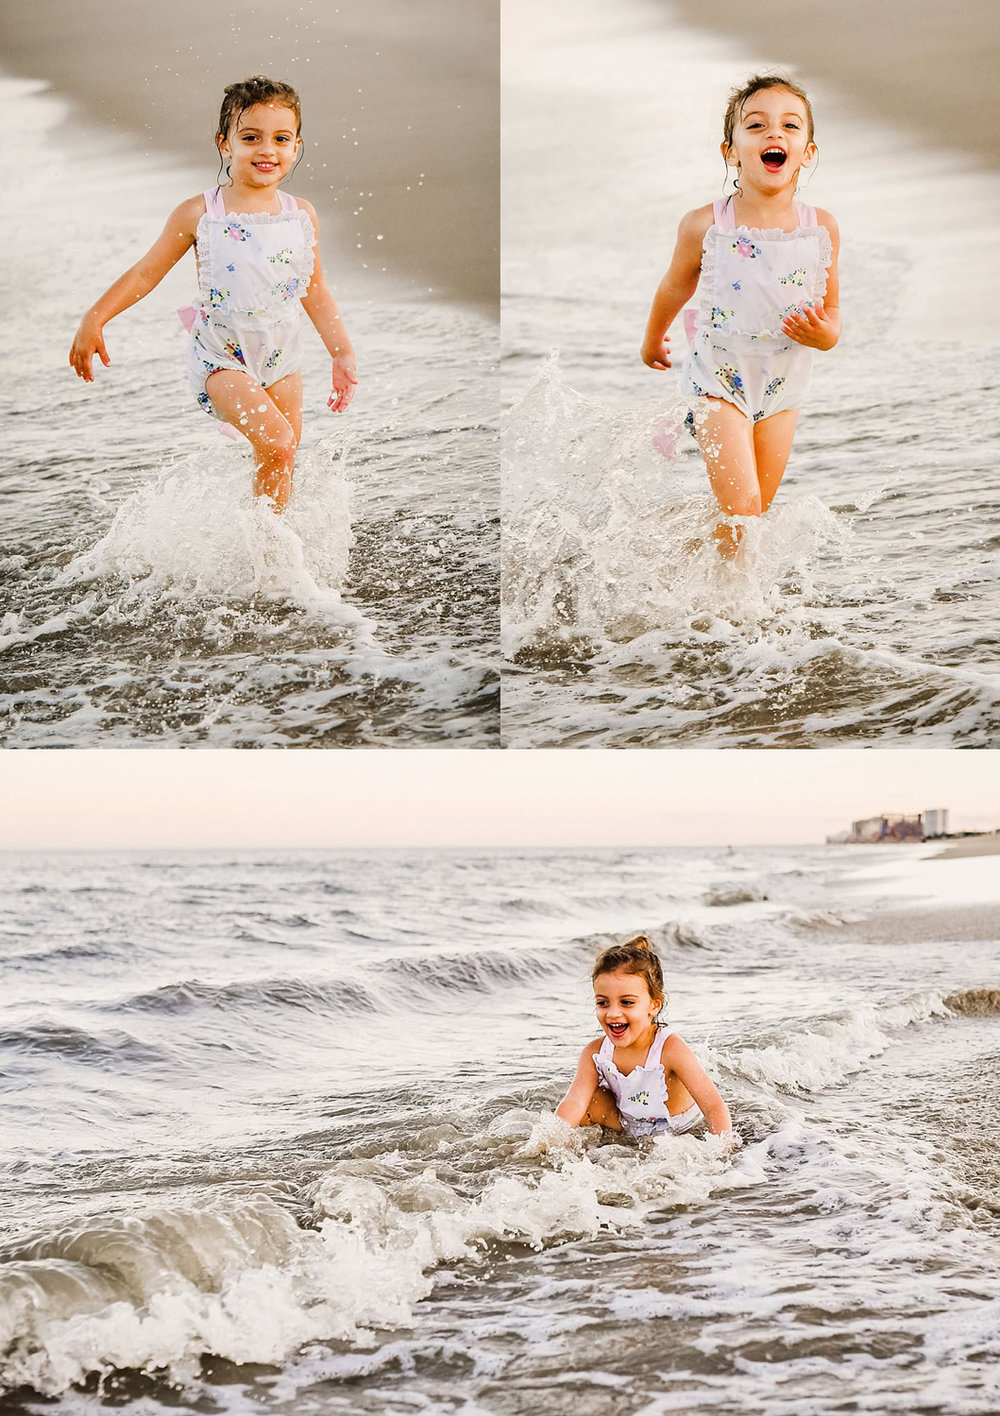 fun-creative-beach-photo-session-melissa-bliss-photography-virginia-beach-oceanfront.jpg